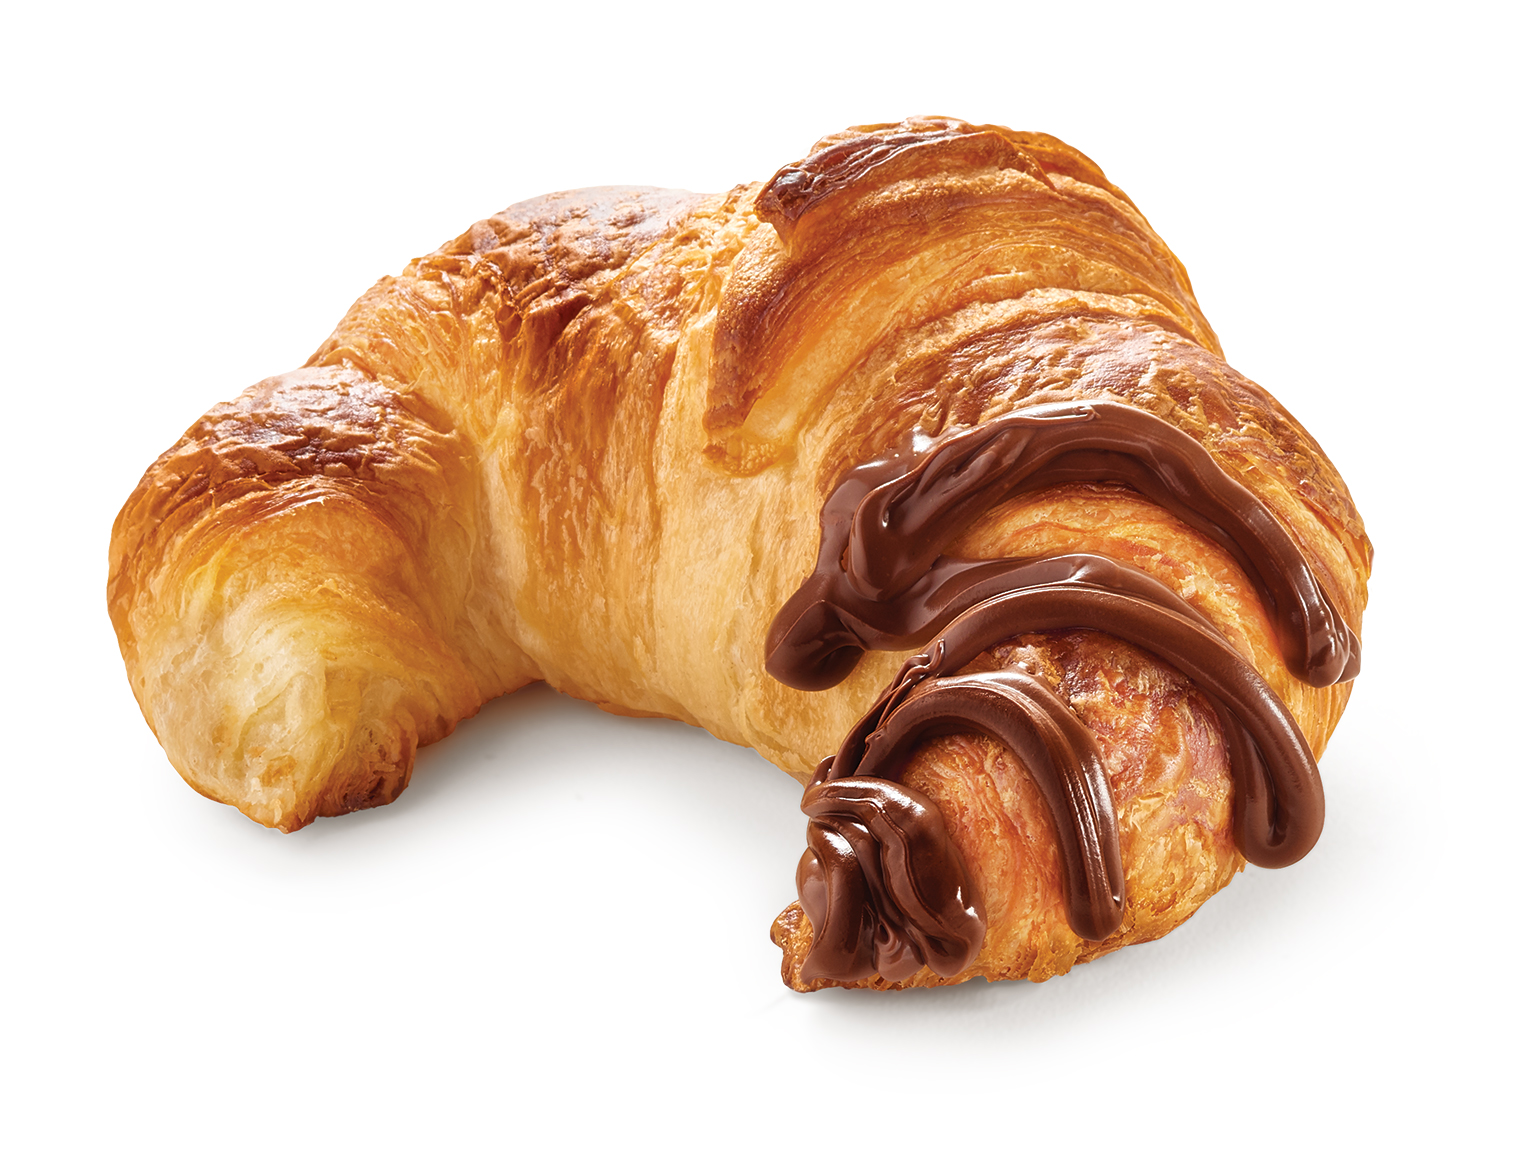 Oven Delights Classic Croissant with Spread Delights spread on top